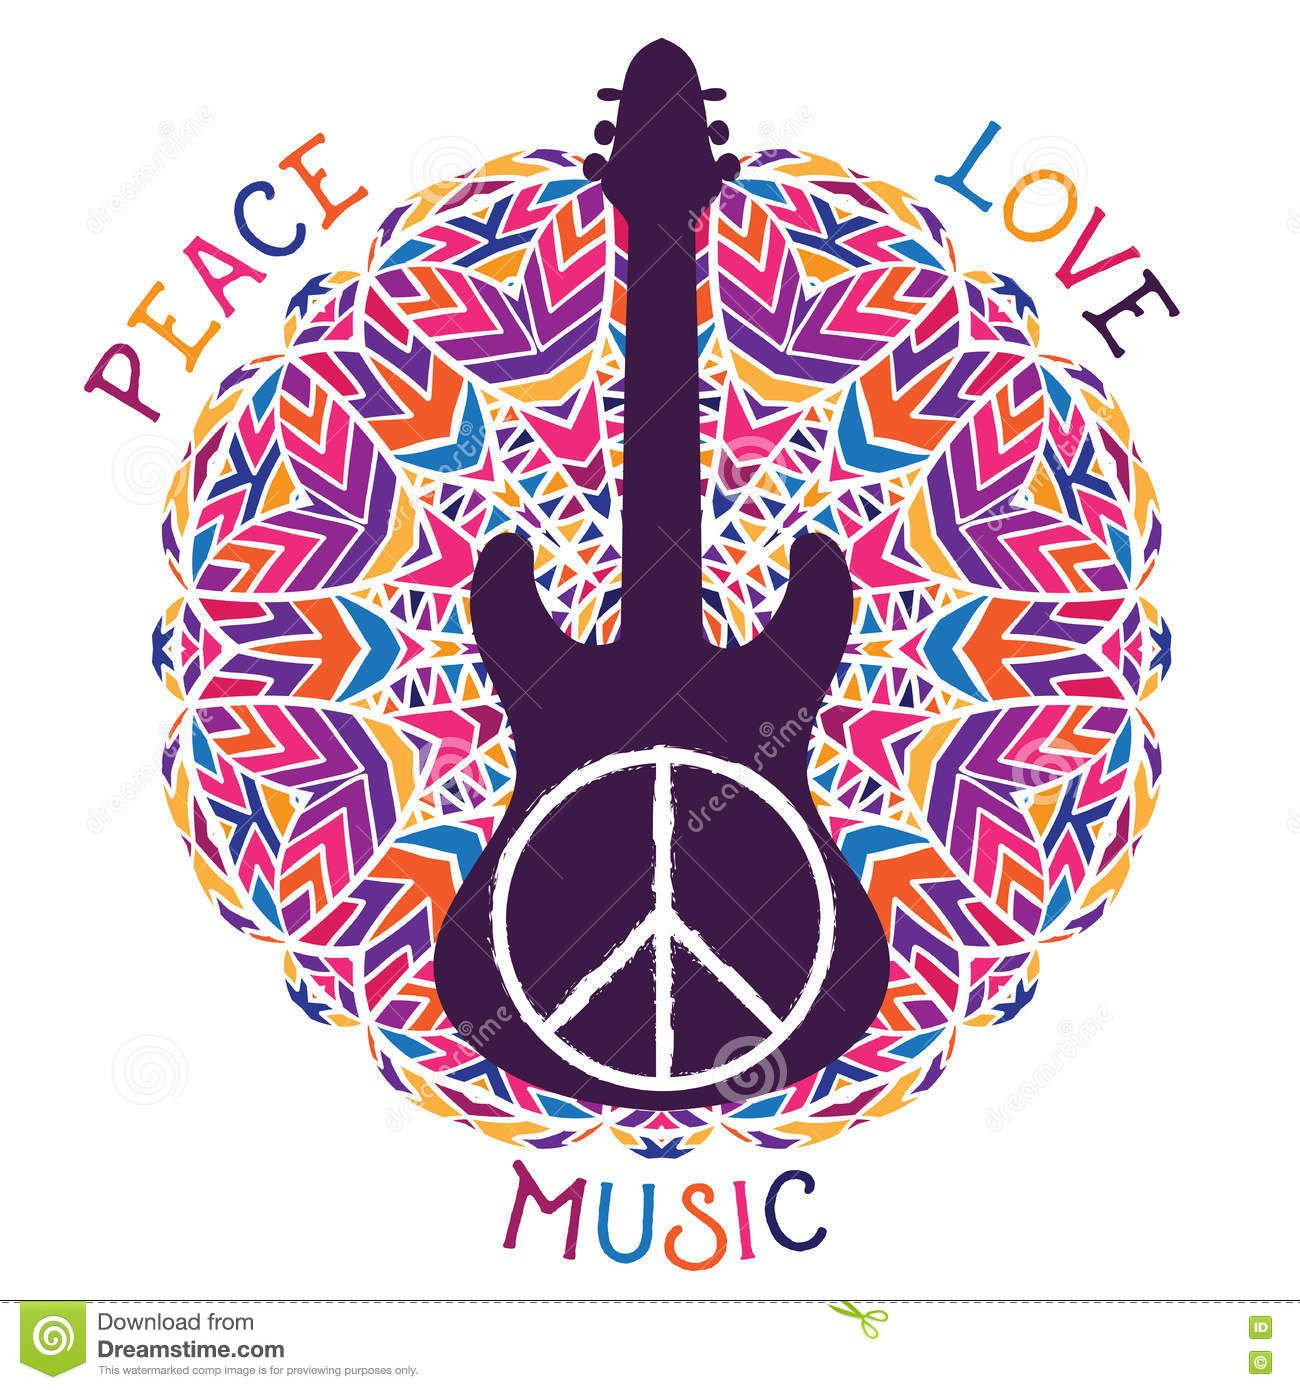 Pin by leanna williams on a ton of peace signs hippie stuff peace and love people of this earth and of the heavens ashlie i miss you so too biocorpaavc Choice Image